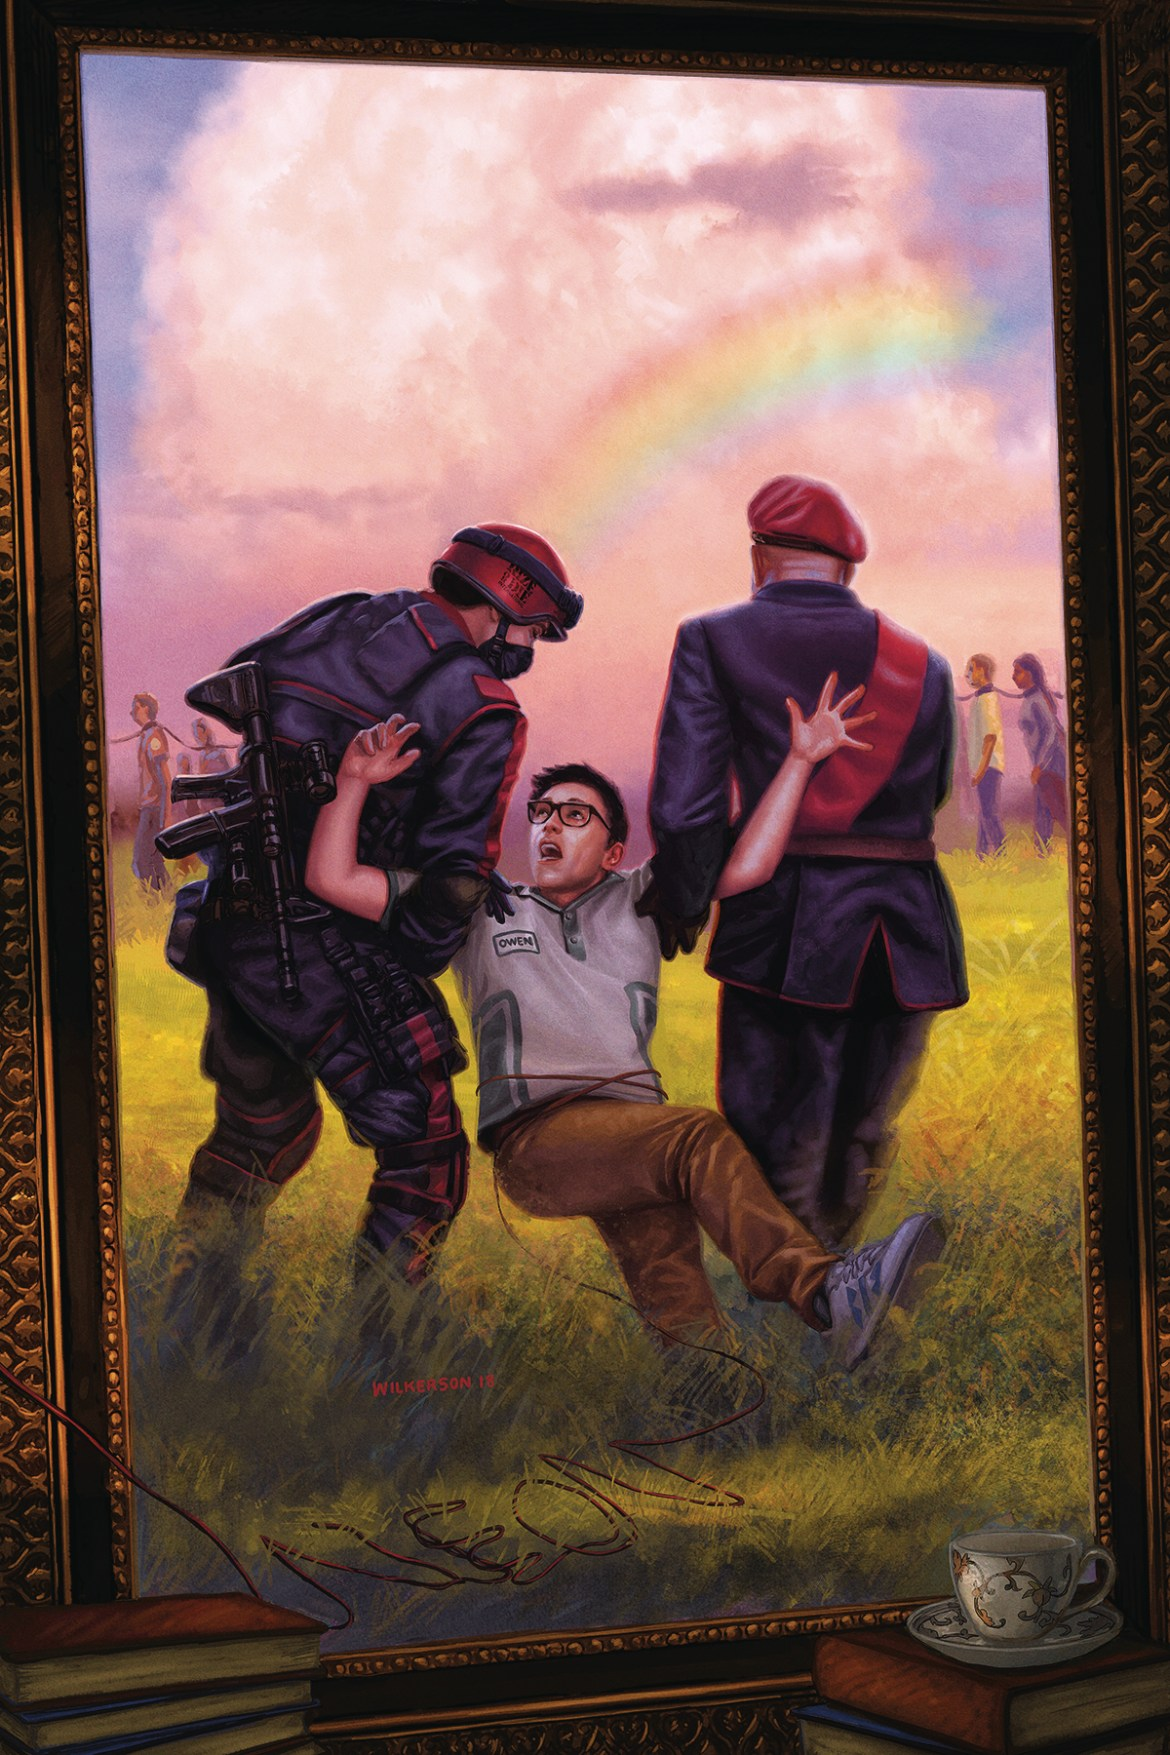 739532_d6691be19cb3eb1fac3b4b34805eb0317ed87427 ComicList: Dark Horse Comics New Releases for 03/27/2019